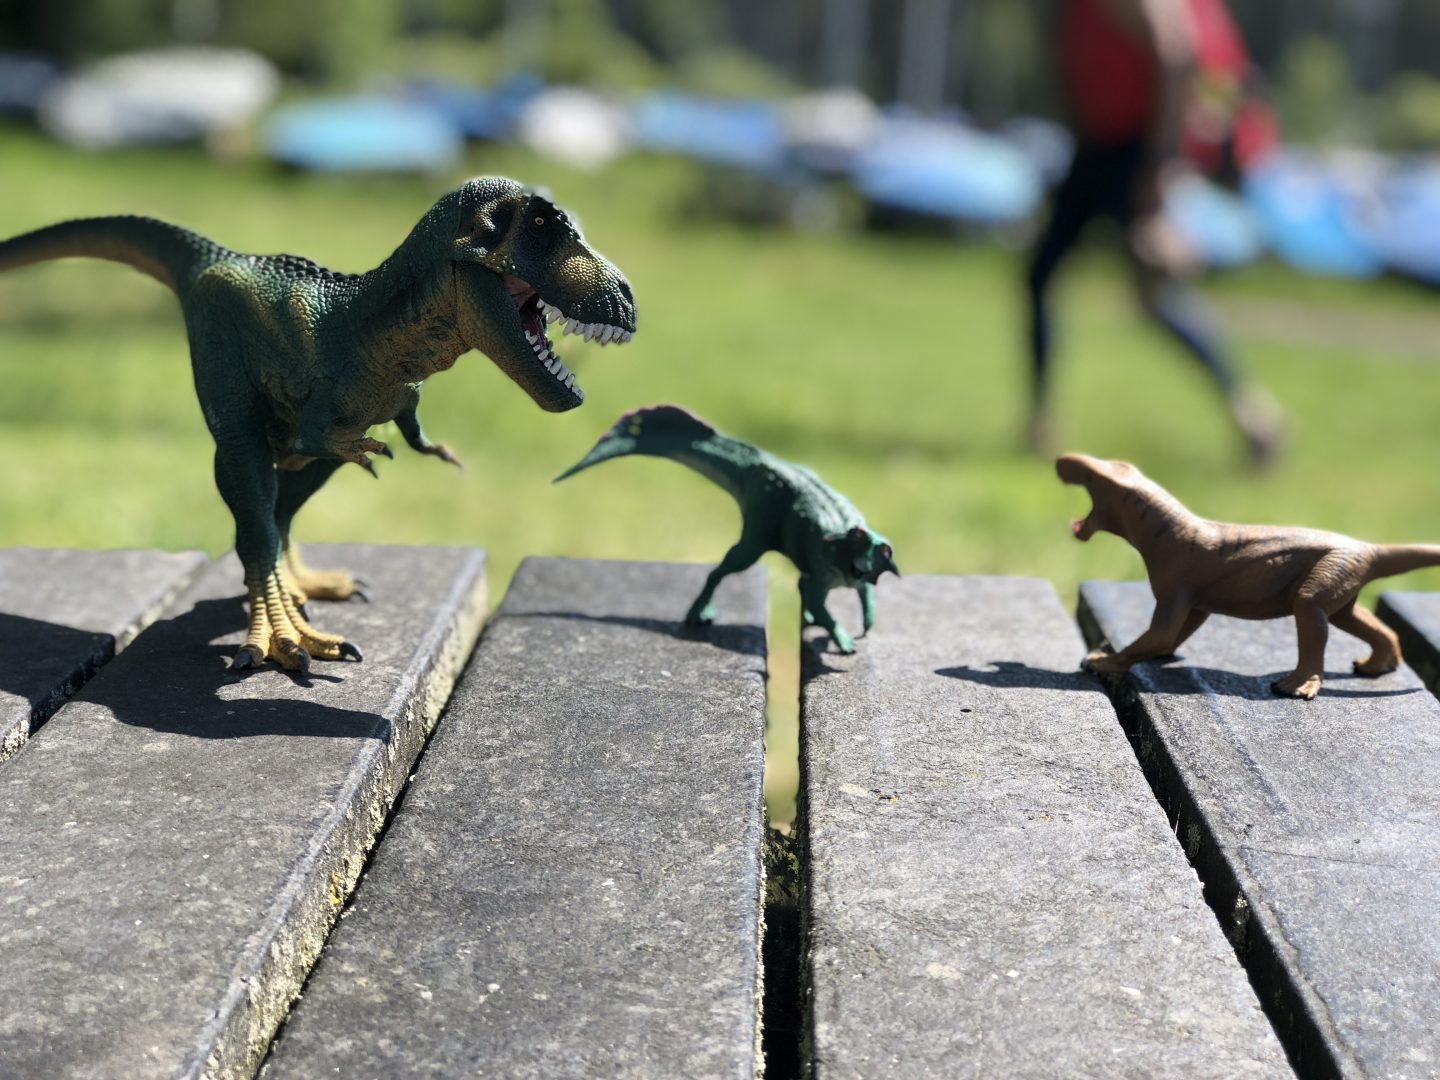 Schleich Dinosaurs figurines [REVIEW]